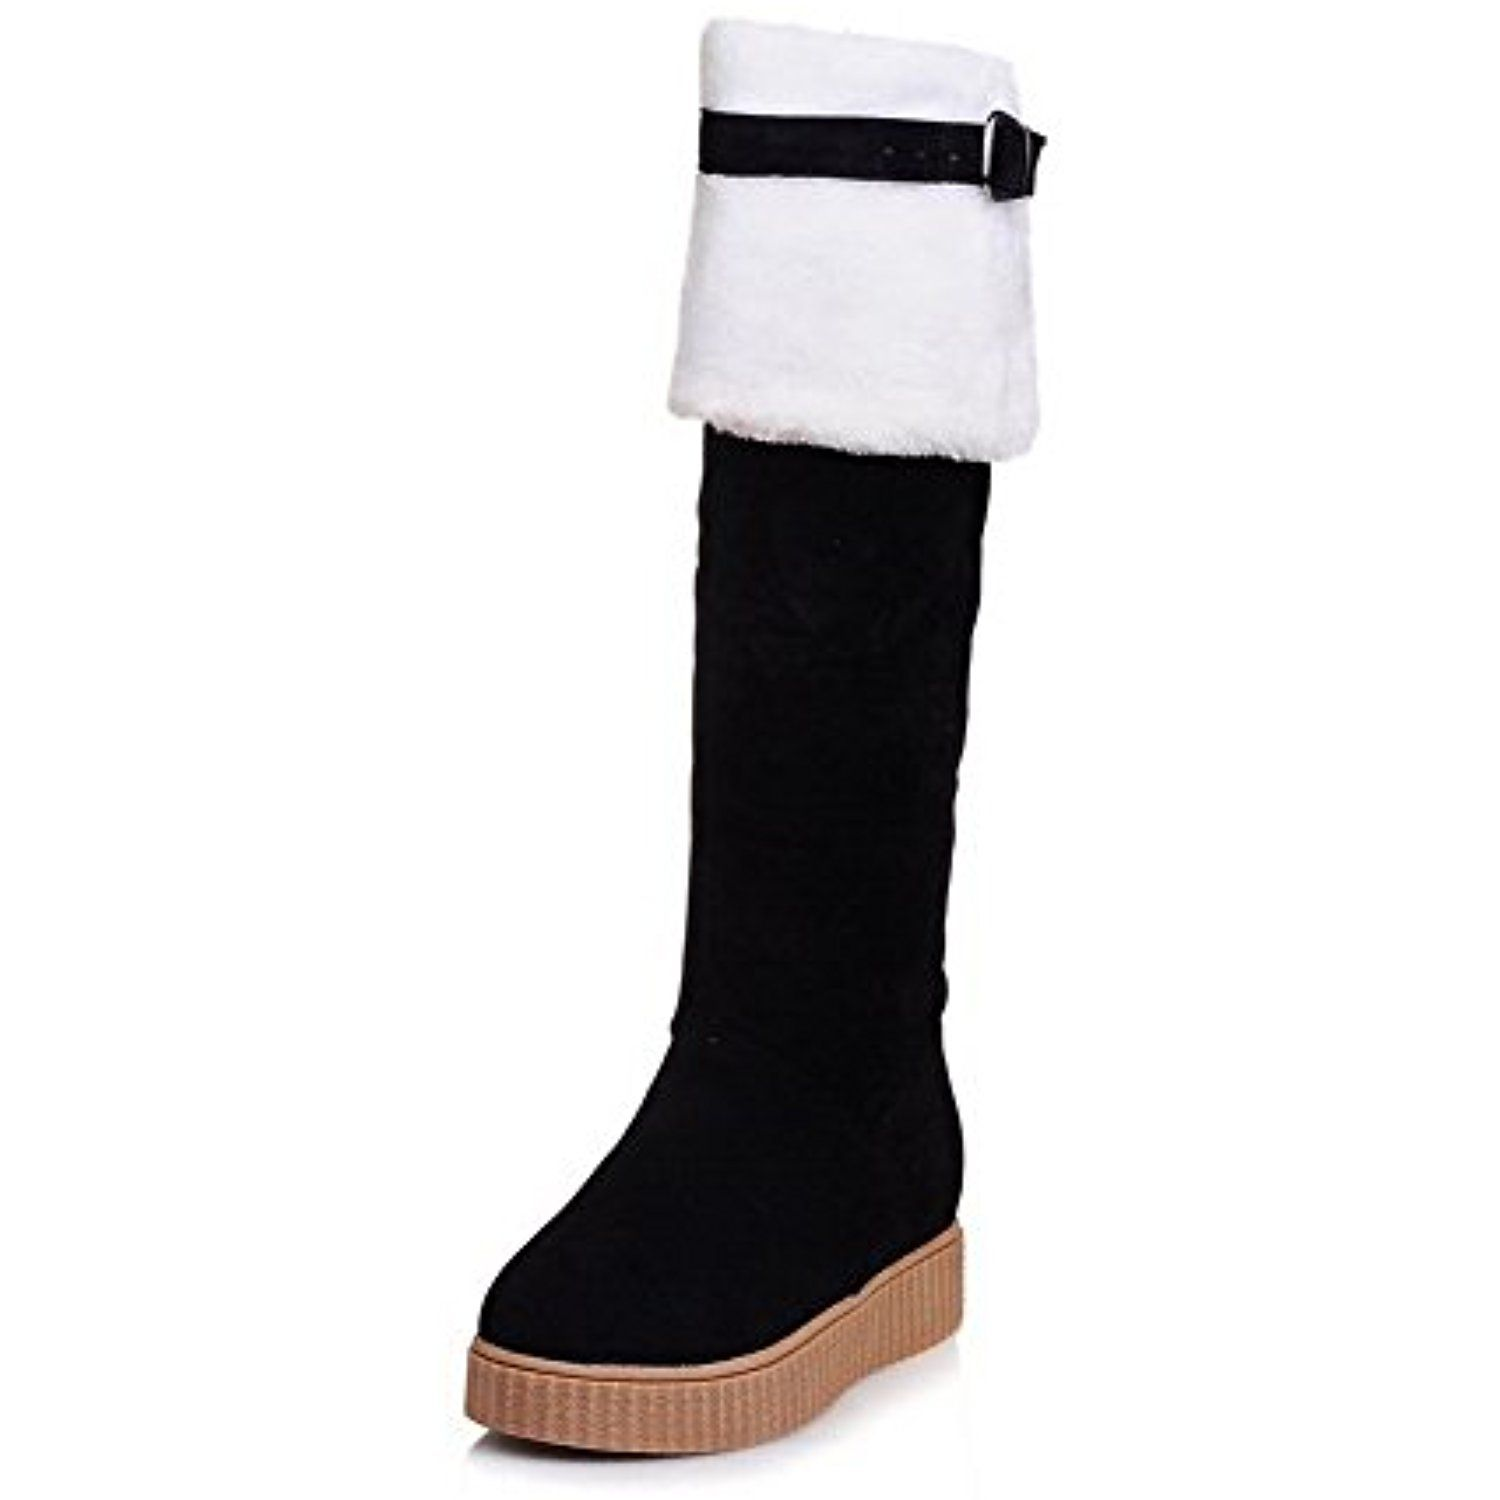 Women's Low-Heels Frosted High-Top Solid Pull-On Snow-Boots